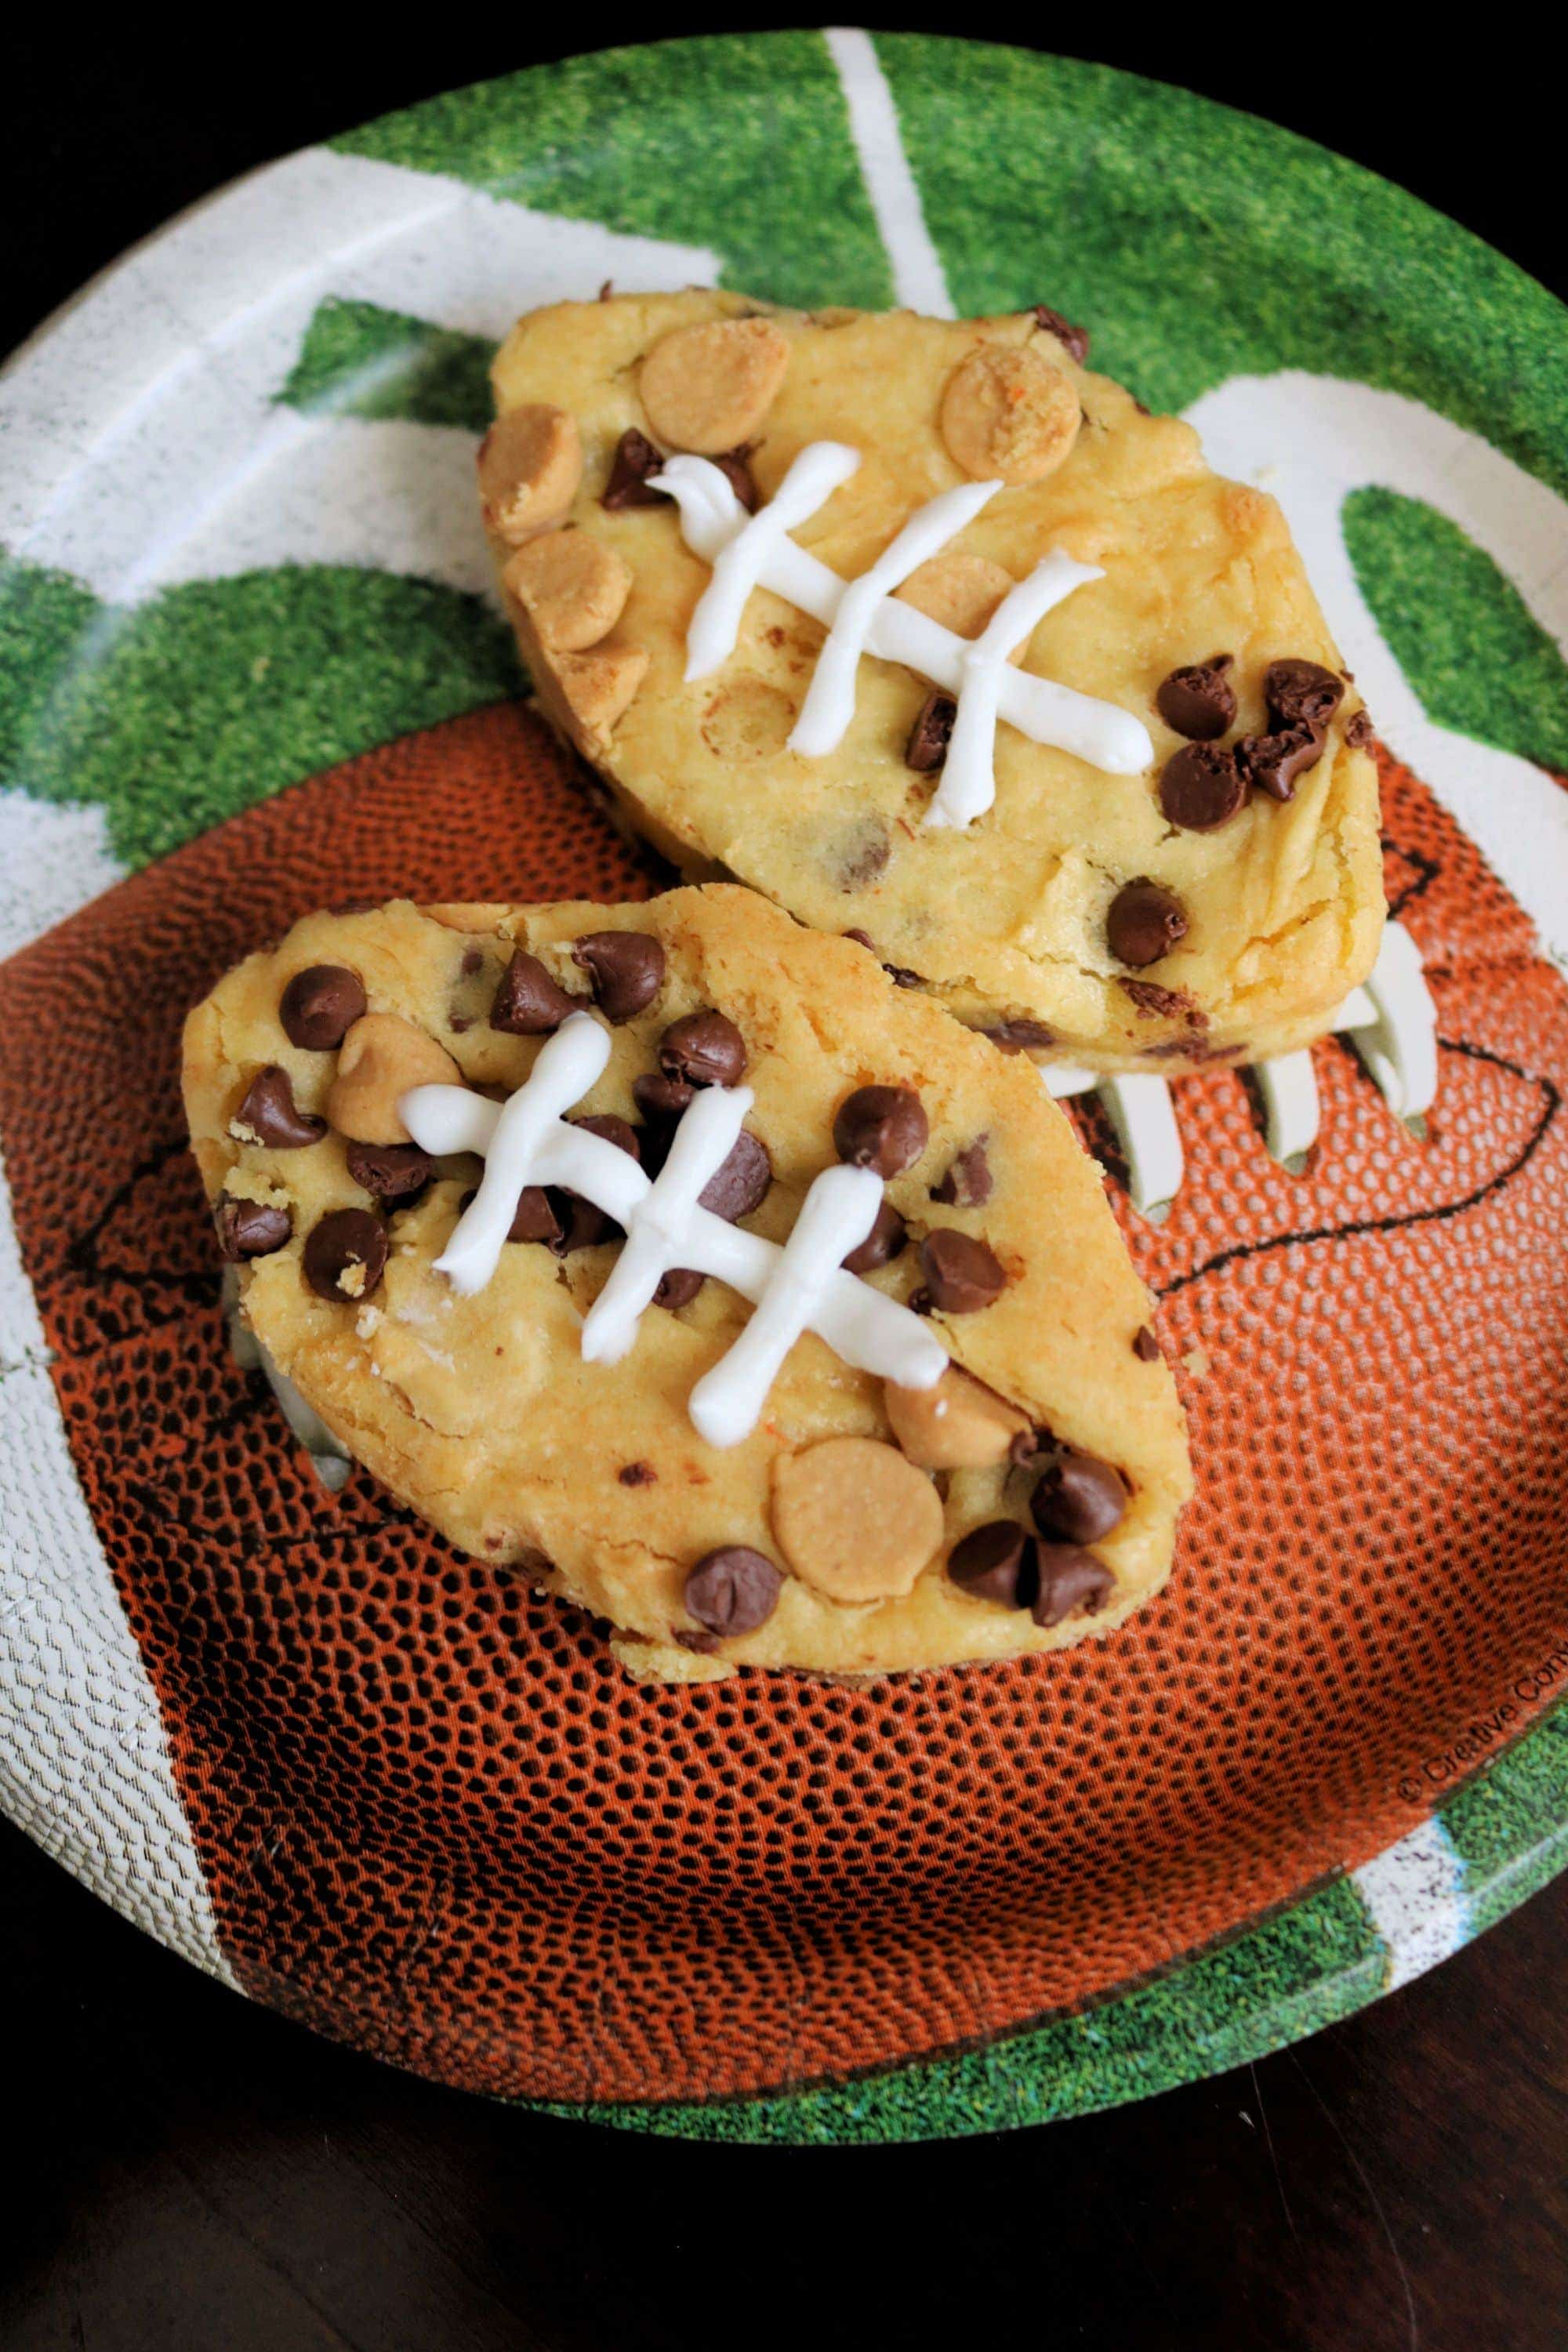 Peanut Butter Chocolate Chip Football Blondies | Need game day recipes for your Super Bowl party? Check out 65 of the best Super Bowl recipes that will feed a crowd including easy and delicious super bowl appetizers, wings, dips, sliders, snacks, desserts, and more! #superbowl #partyfood #superbowlfood #gamedayrecipes #appetizers #snacks